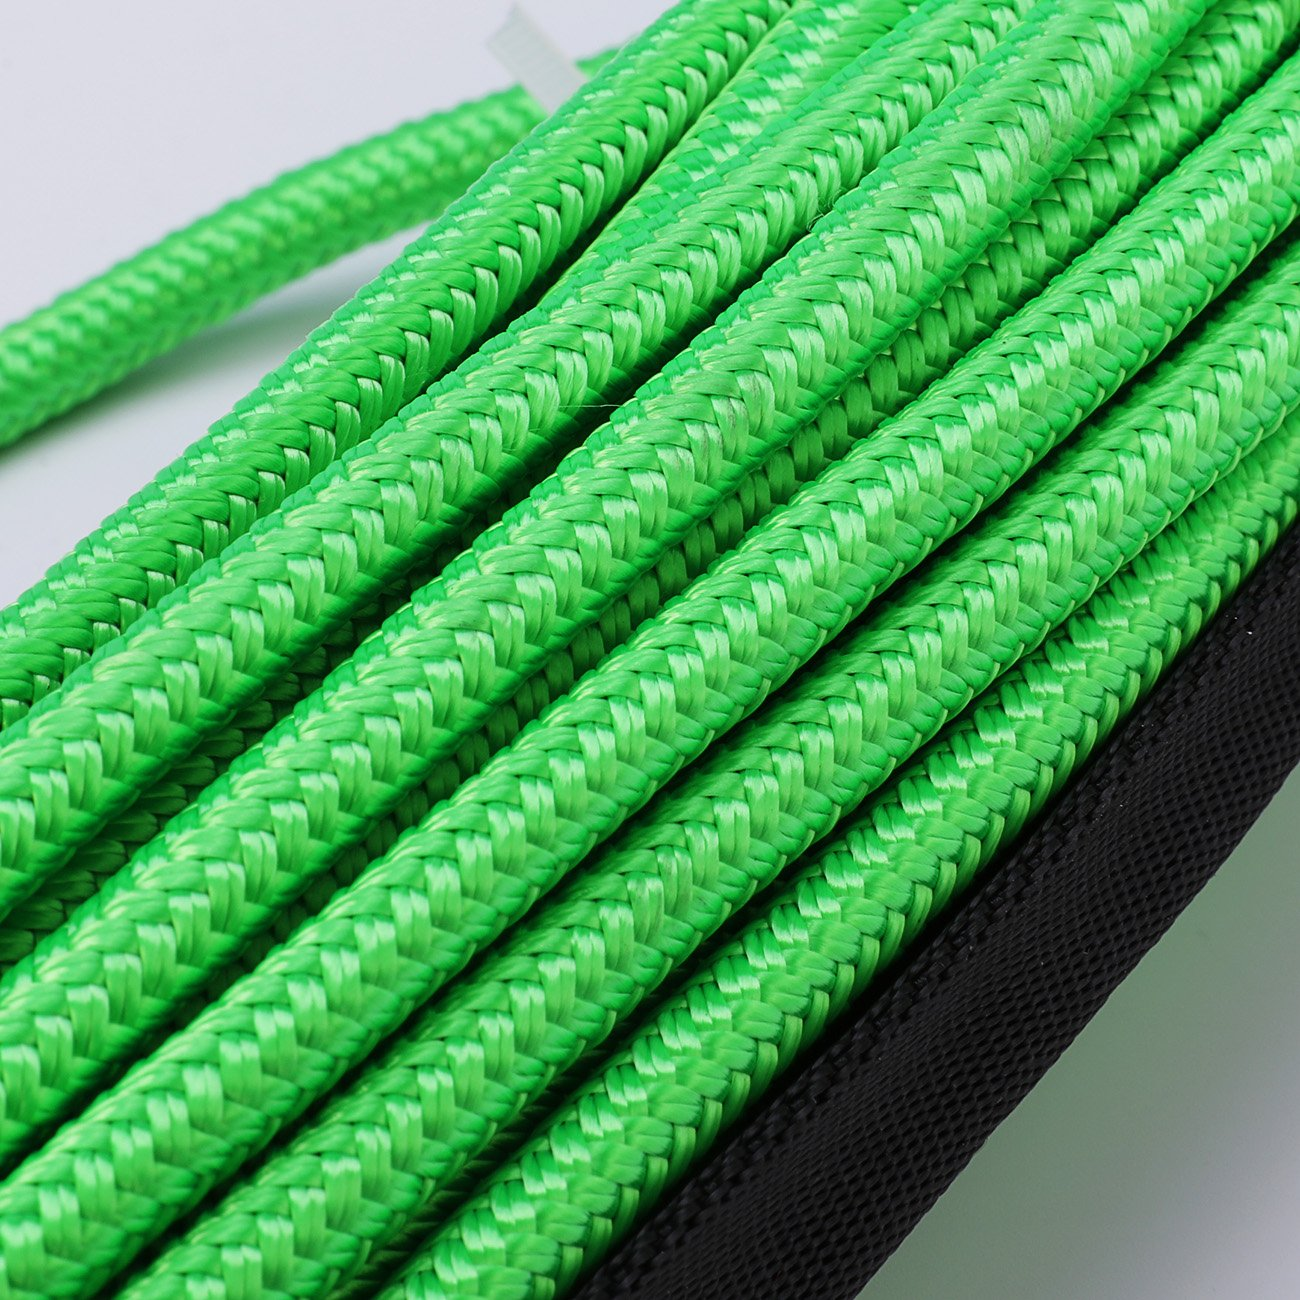 Synthetic Winch Rope 50x1//4 Snap Hook and Rubber Stopper Strong Durable Dyneema Cable Green Winch Rope 7800lbs with Sheath for atvs Winches ATV UTV SUV Truck Boat Ramsey Car Motorcycle Samlighting